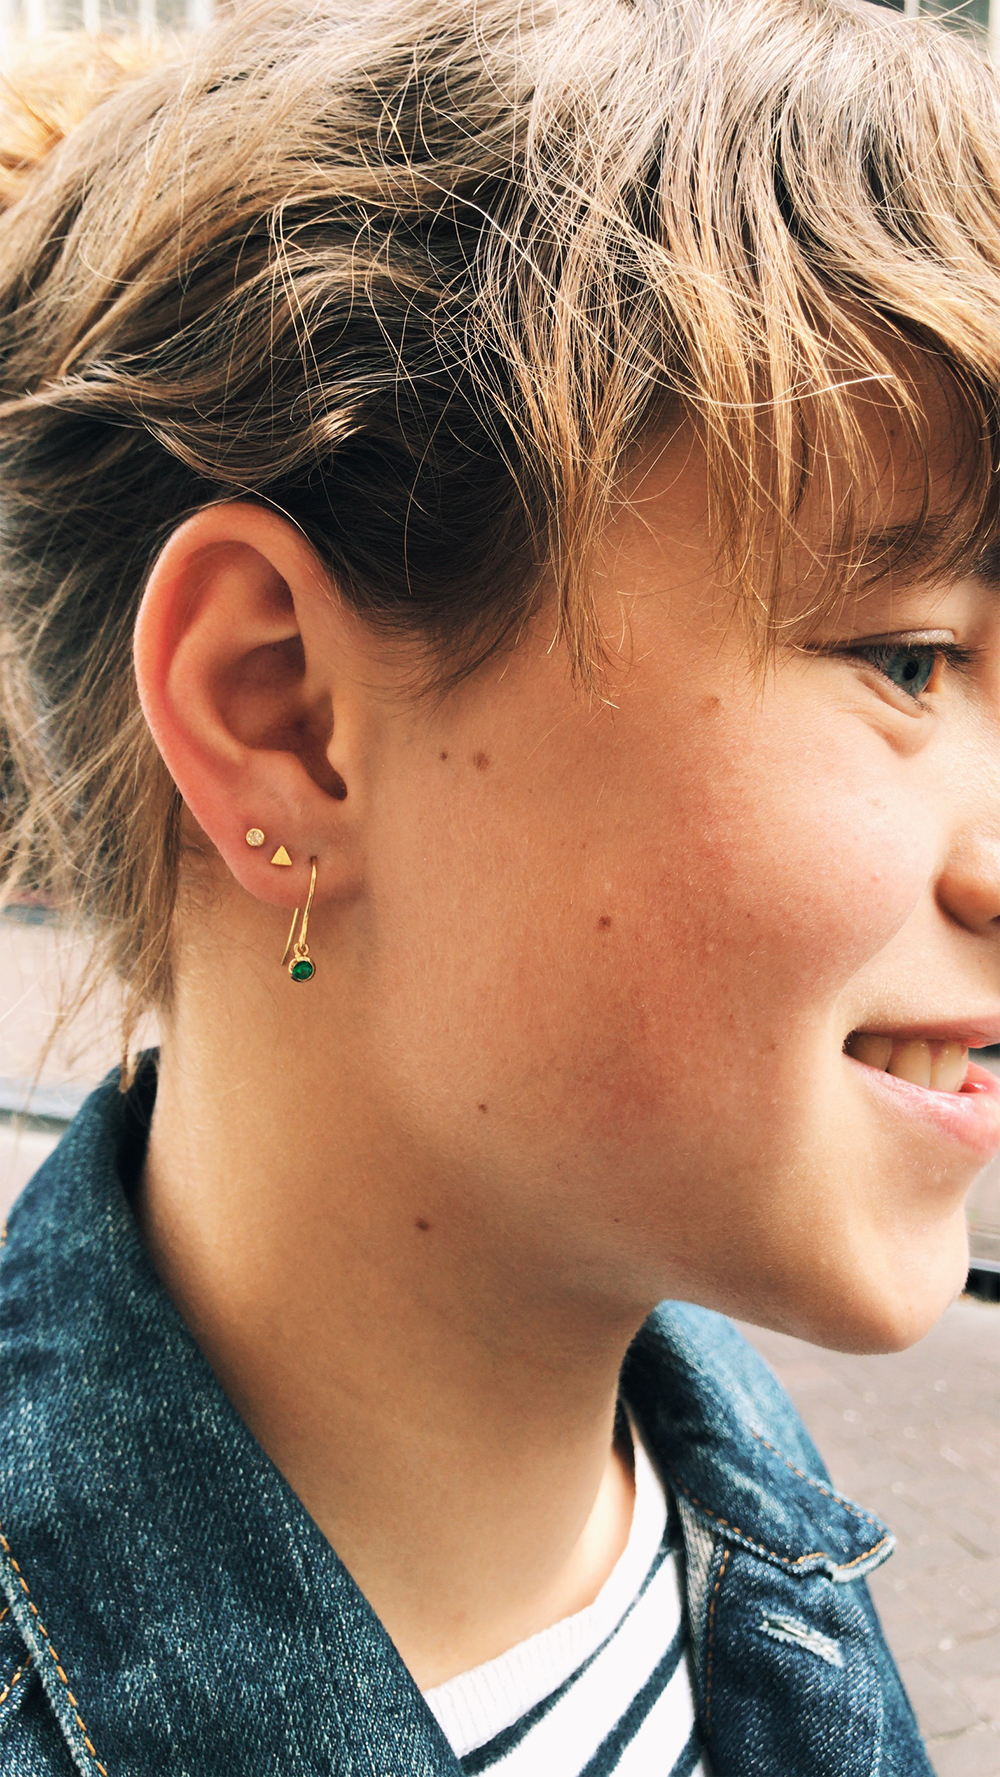 Ear Piercings For Children Yay Or Nay Babyccino Kids Daily